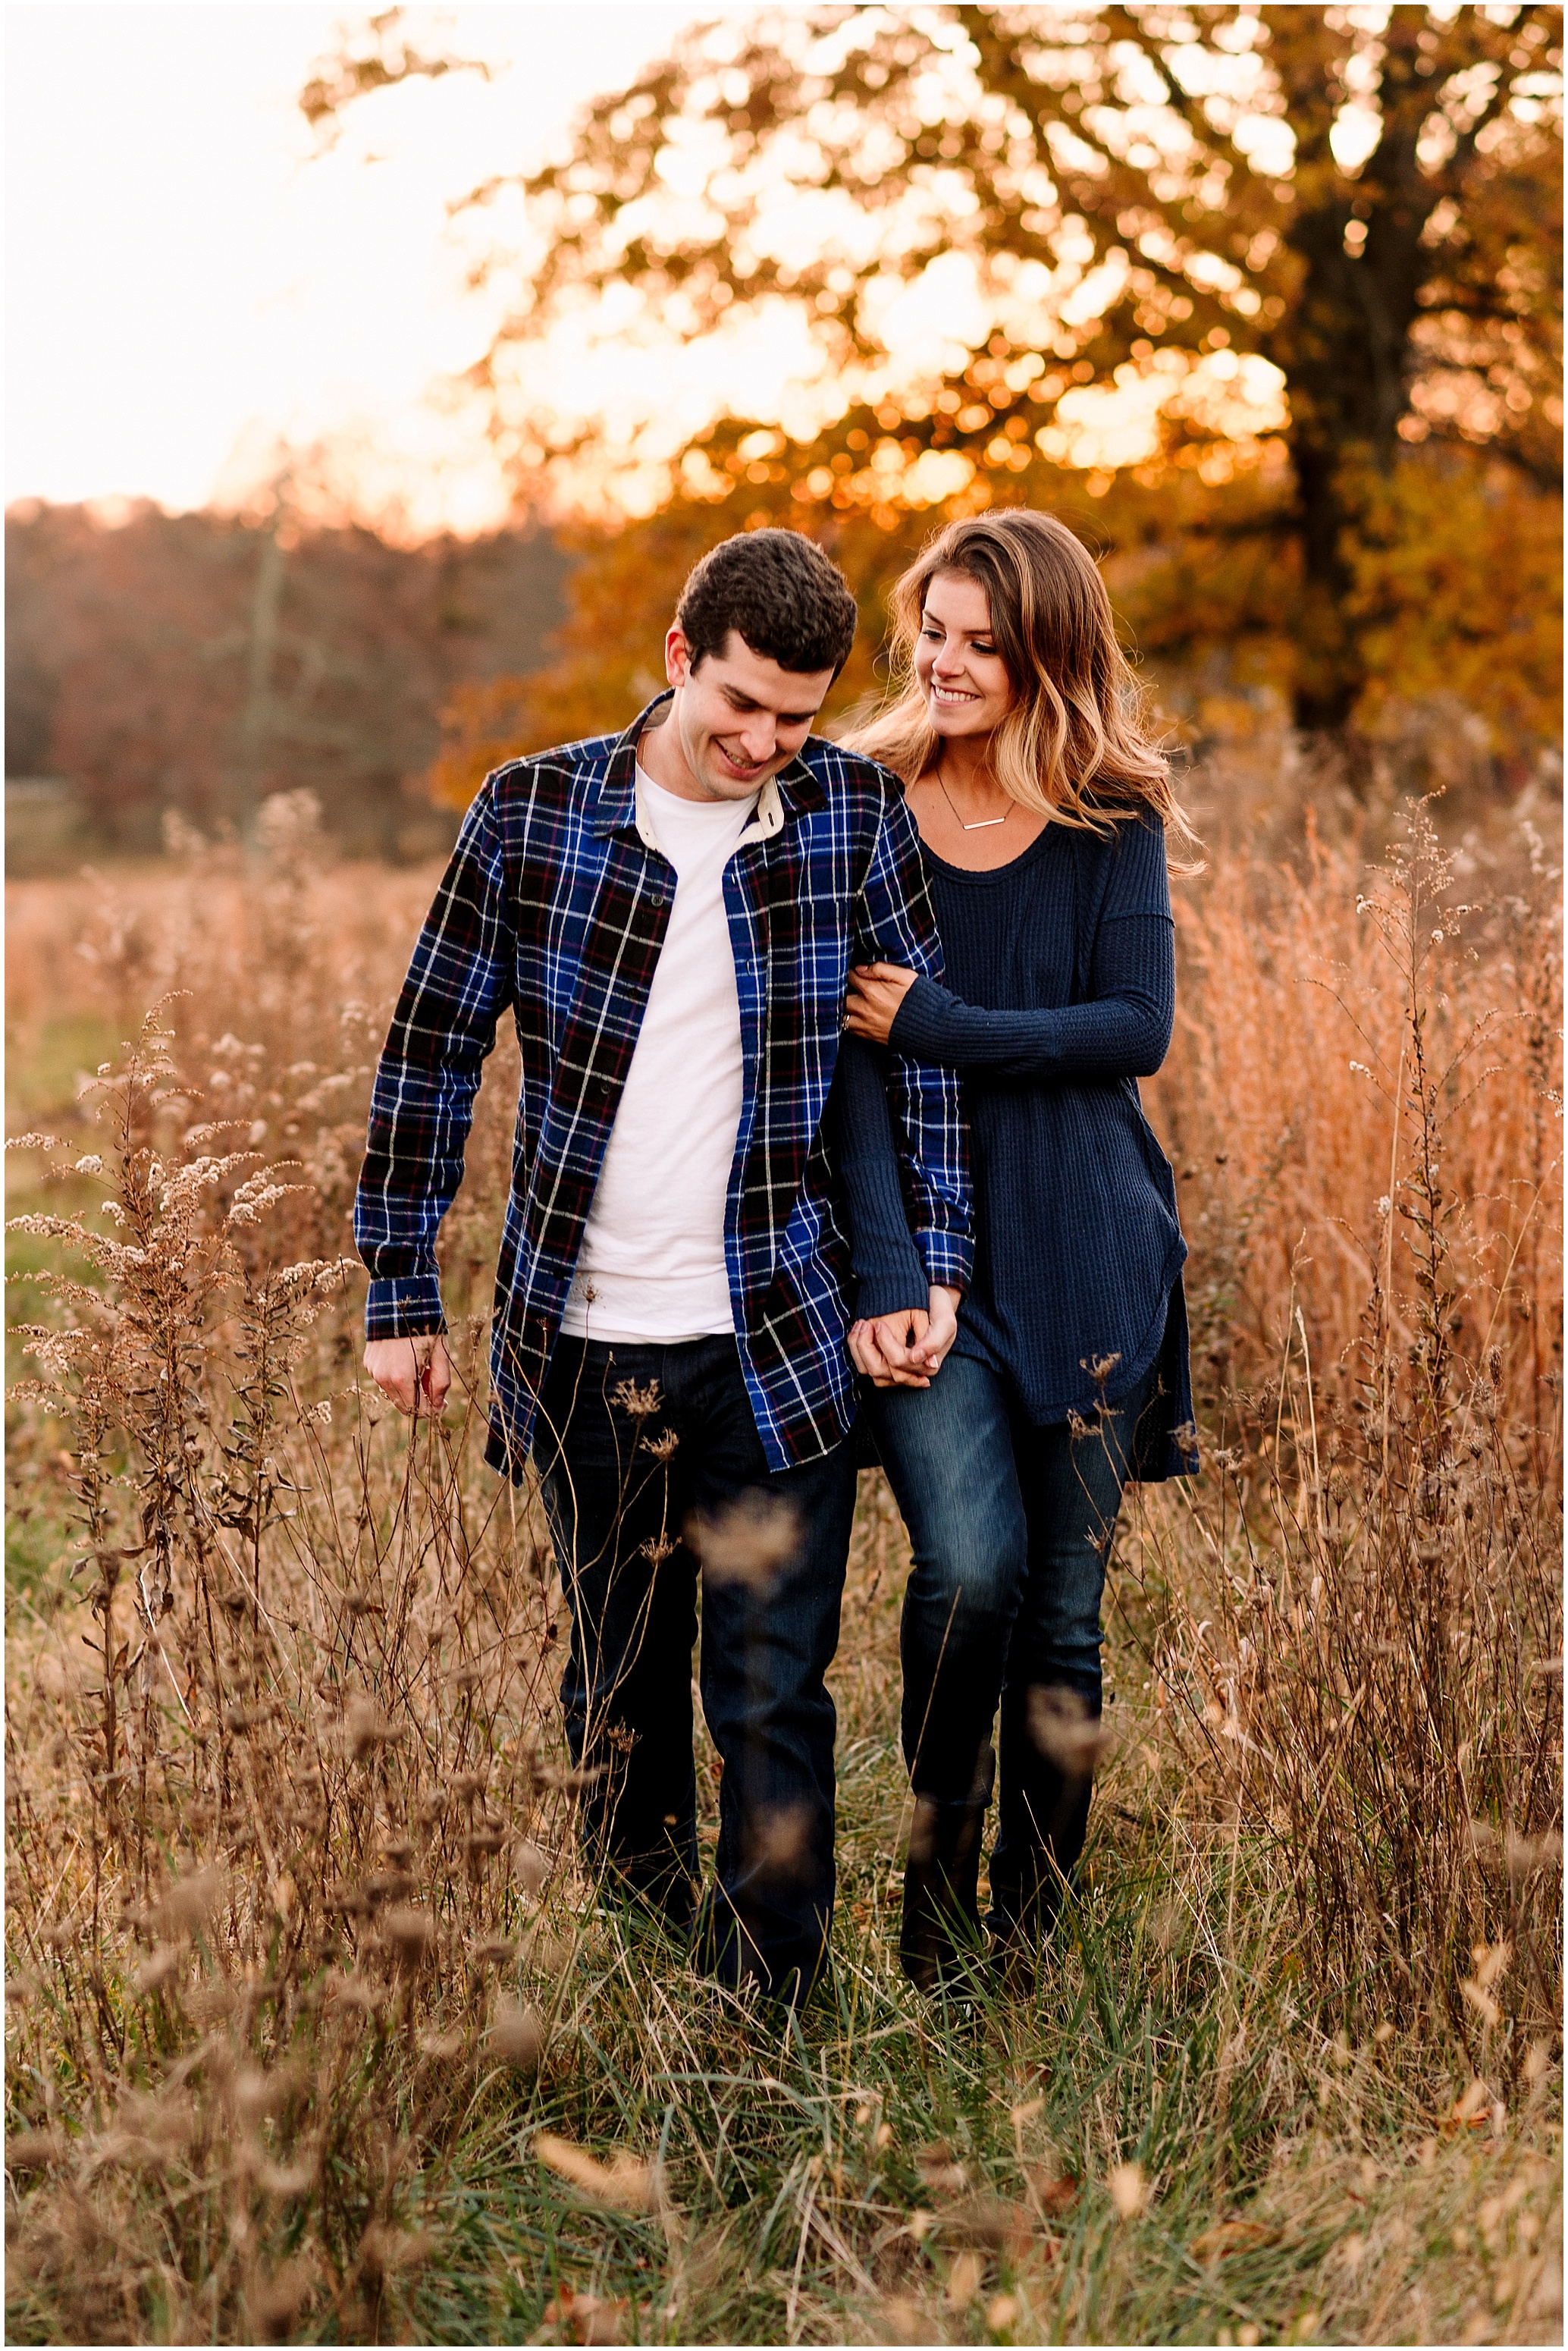 Hannah Leigh Photography Ellicott City MD Engagement Session_6949.jpg